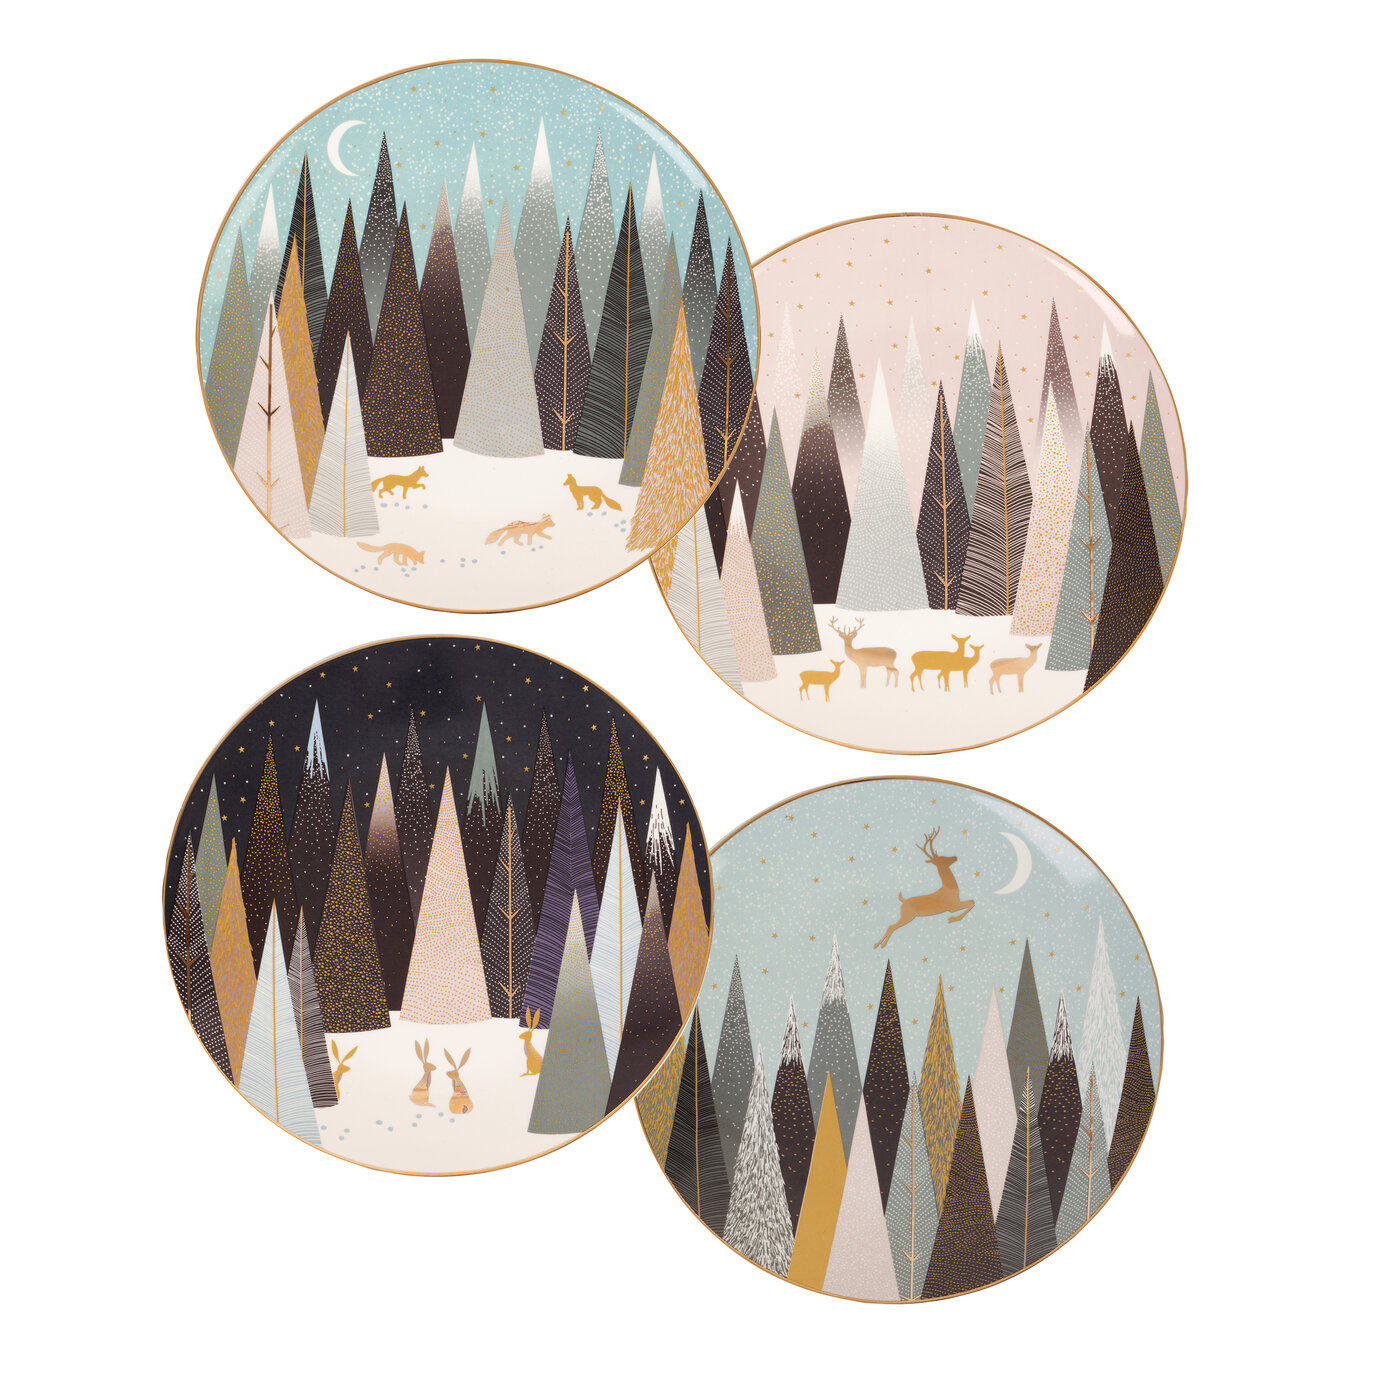 Sara Miller London for Portmeirion Frosted Pines Dessert Plates Set of 4 image number 0